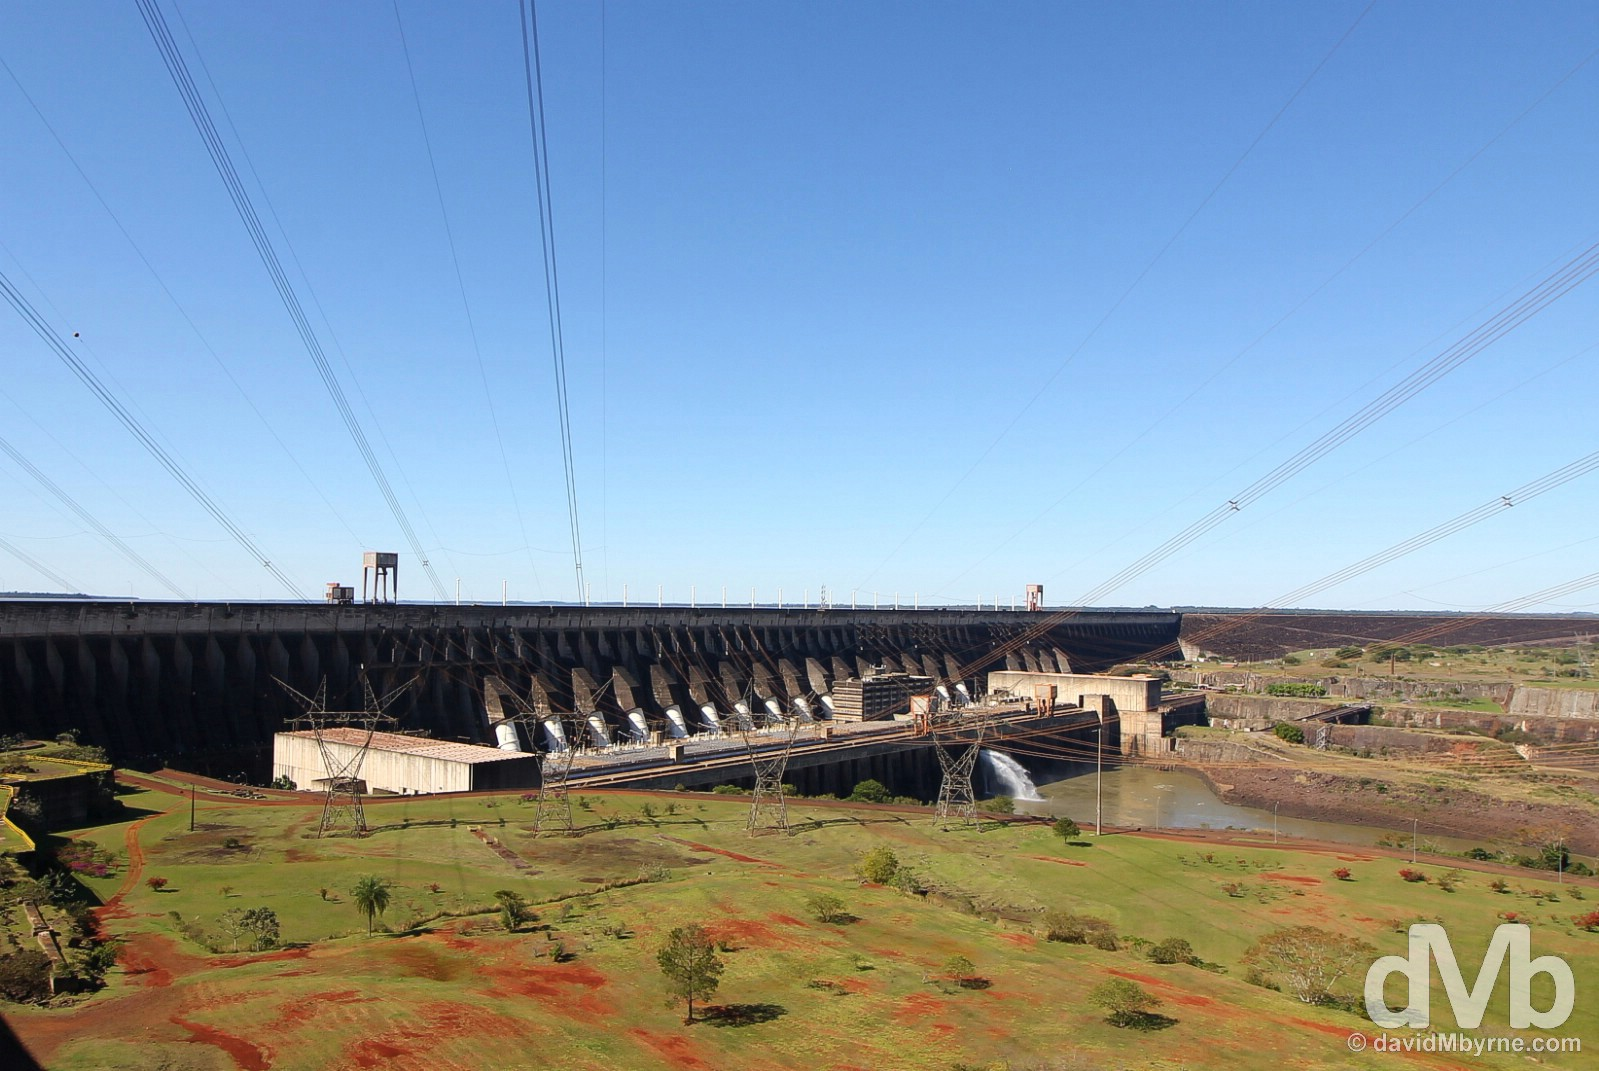 An overview of the massive Itaipu Dam on the Brazilian Paraguayan border. September 13, 2015.